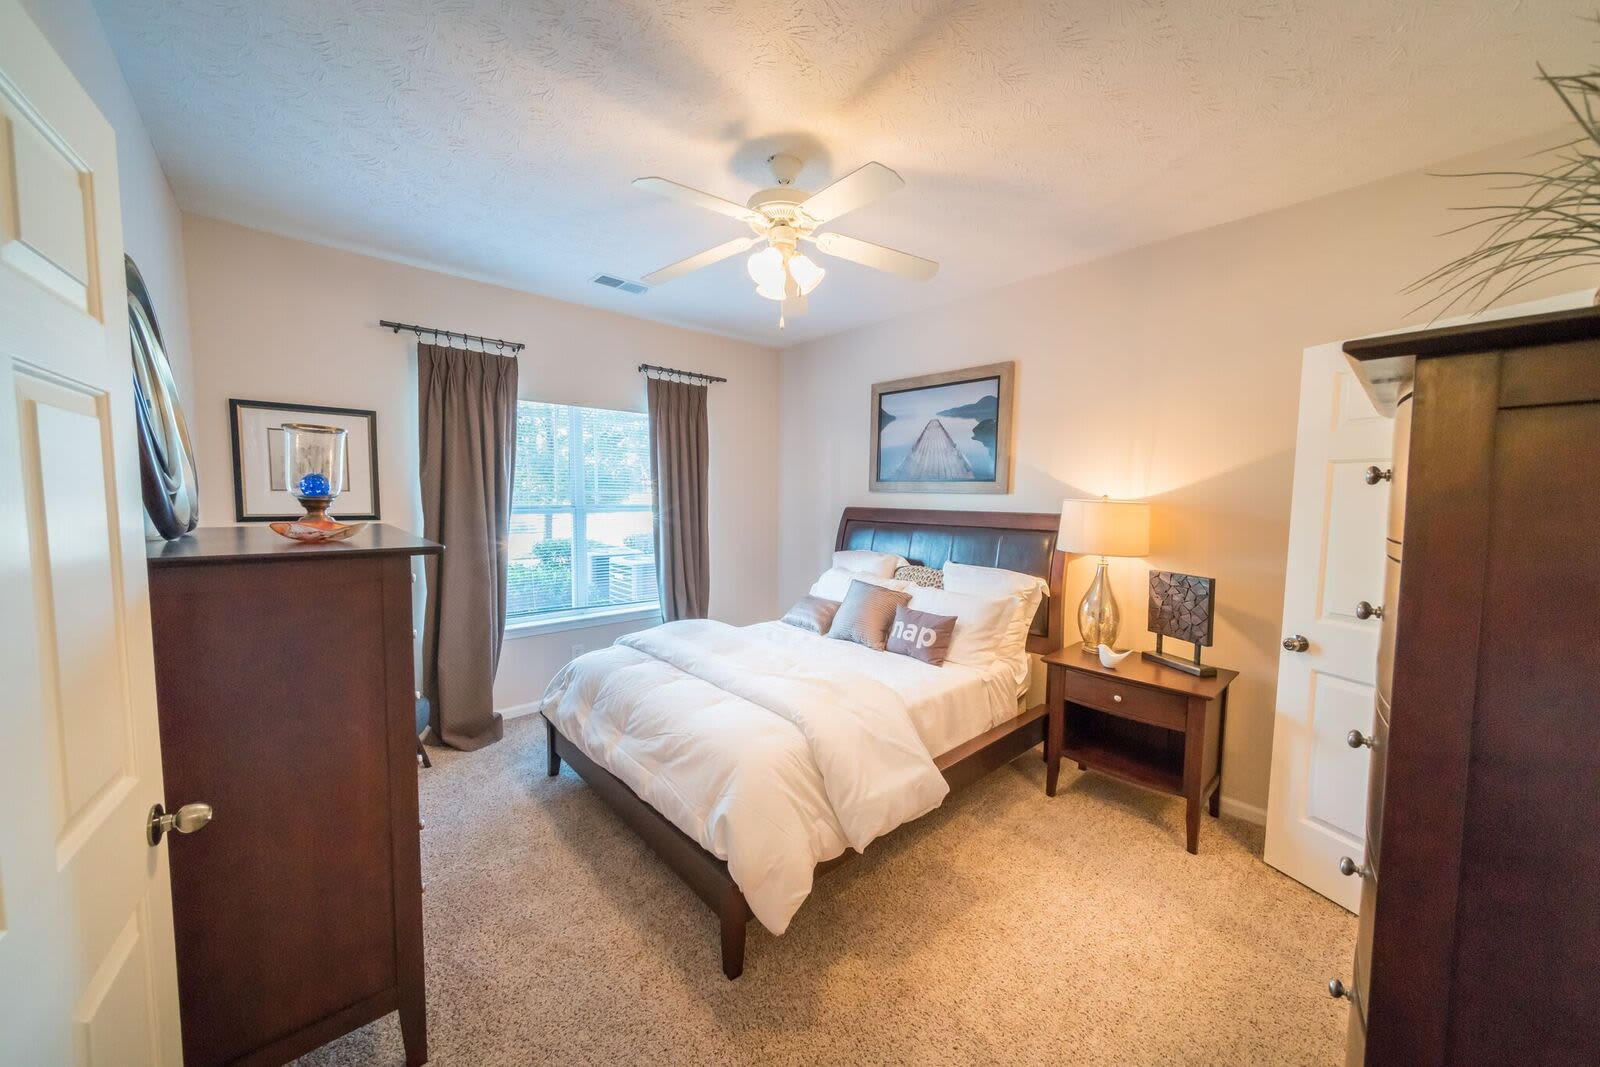 Cozy bedroom at apartments in McDonough, Georgia